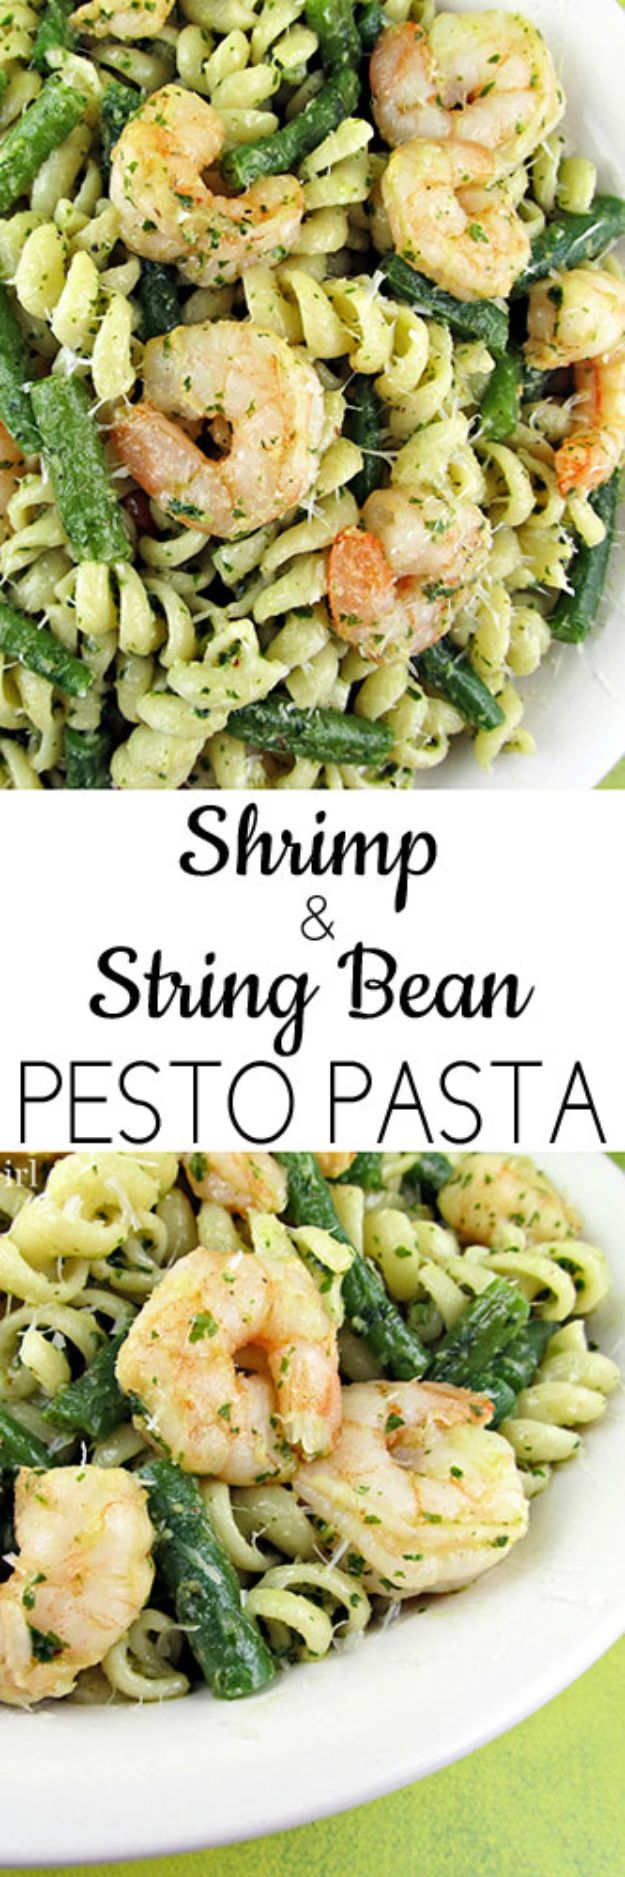 Shrimp Recipes - Shrimp & String Bean Pesto Pasta - Healthy, Easy Recipe Ideas for Dinner Using Shrimp - Grilled, Creamy Baked Pasta, Fried, Spicy Asian Style, Mexican, Sauteed Garlic